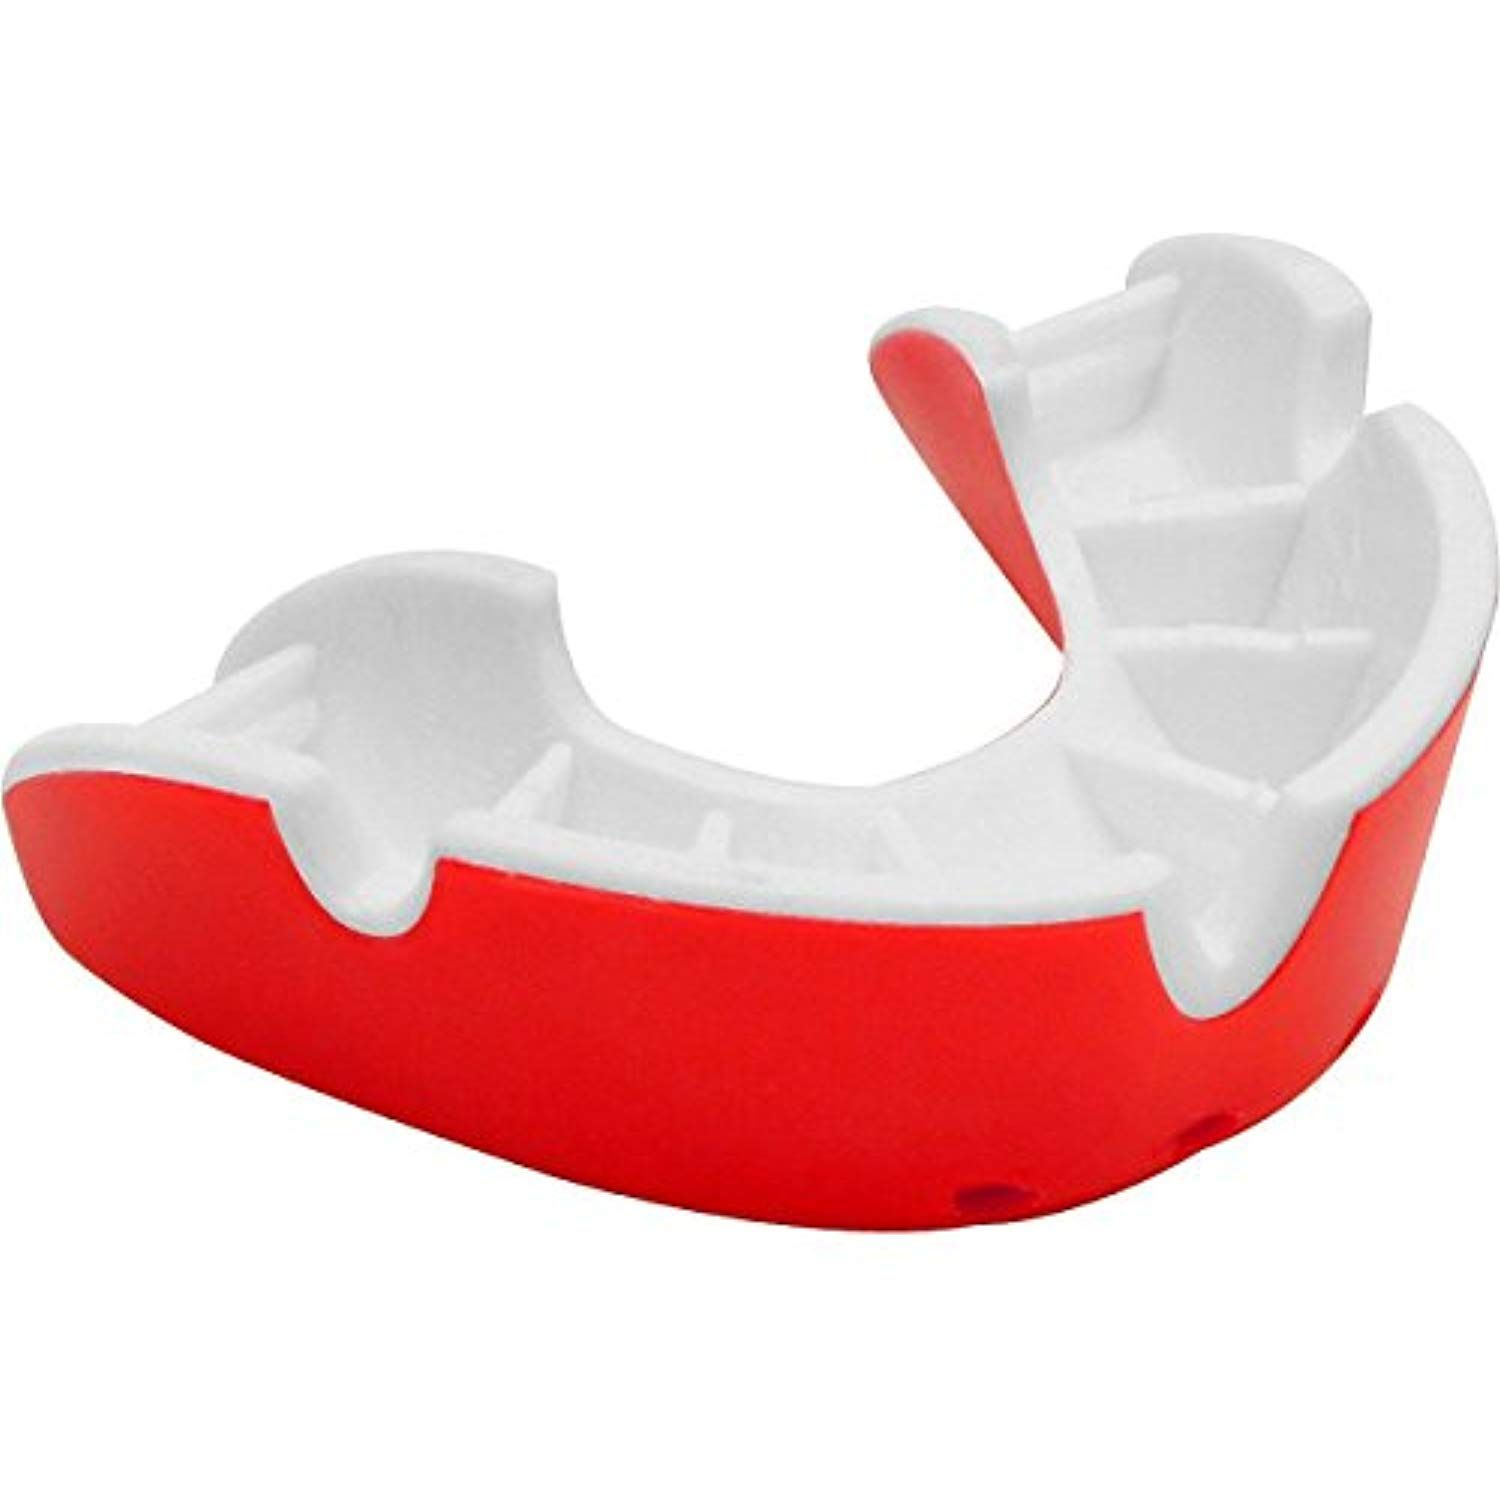 Mueller matrix mouthguard moderateyouth red click on